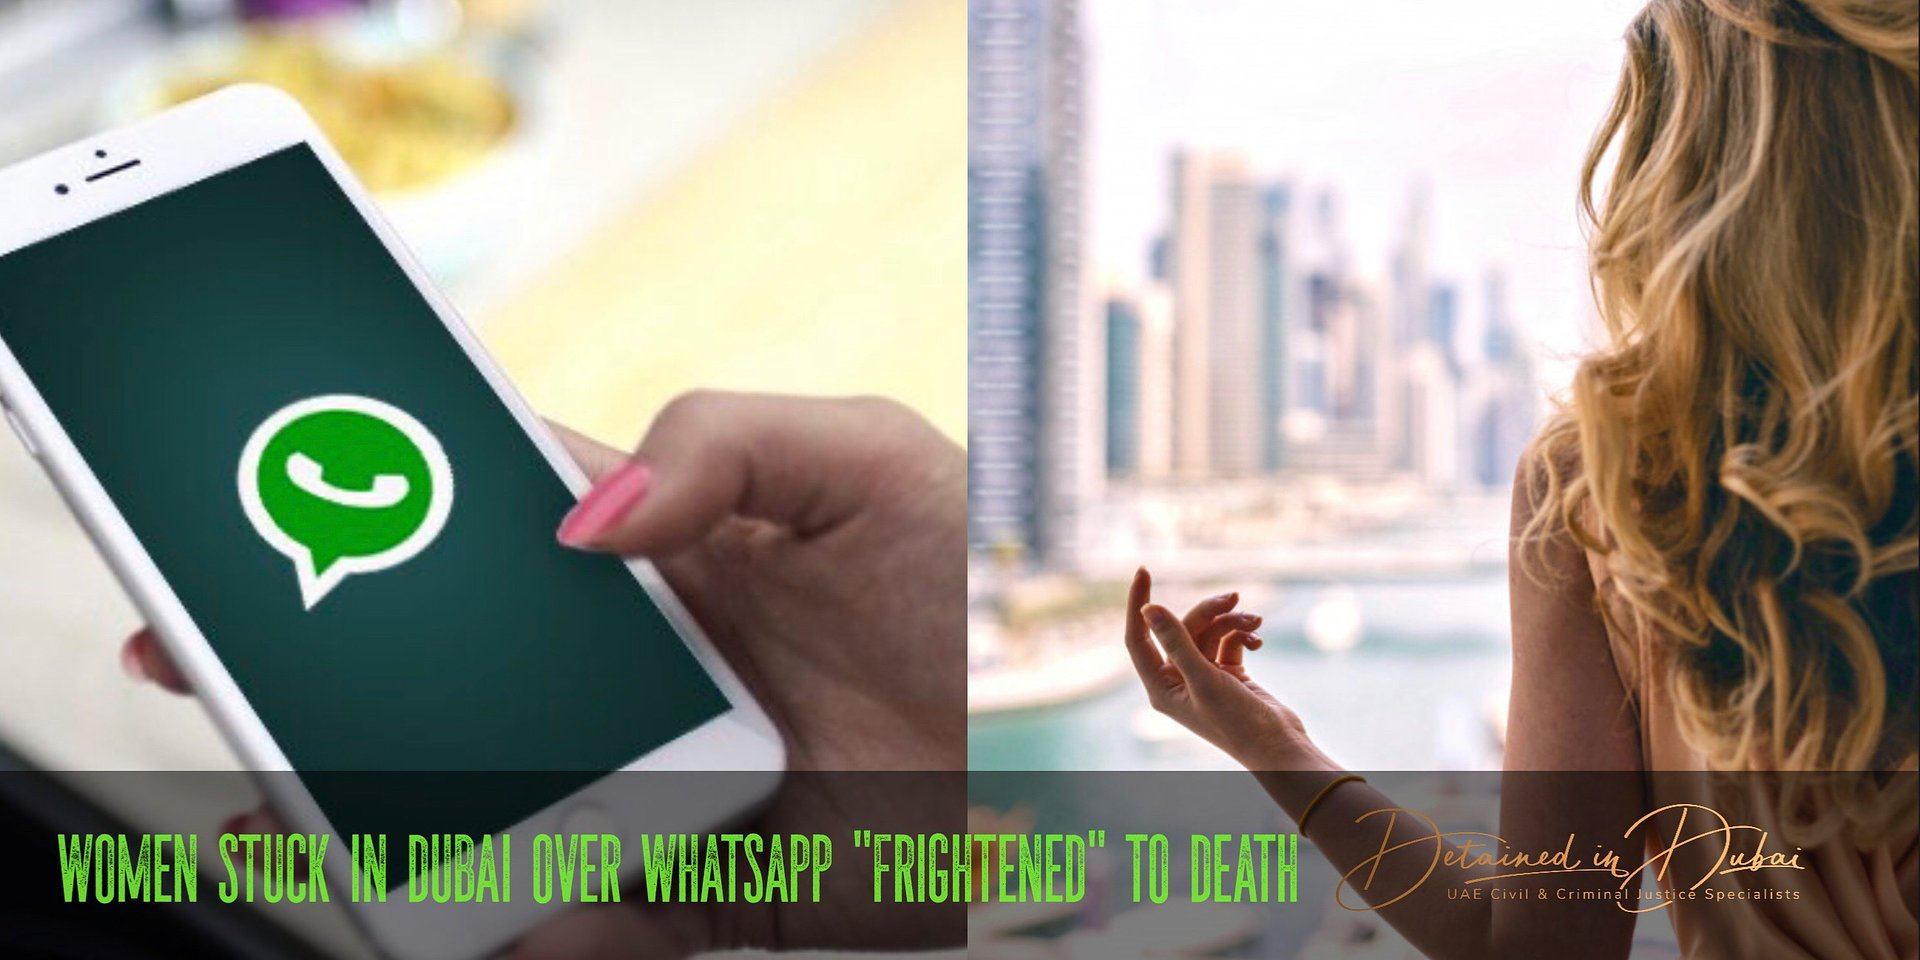 """Woman stuck in Dubai over WhatsApp """"frightened to death"""""""